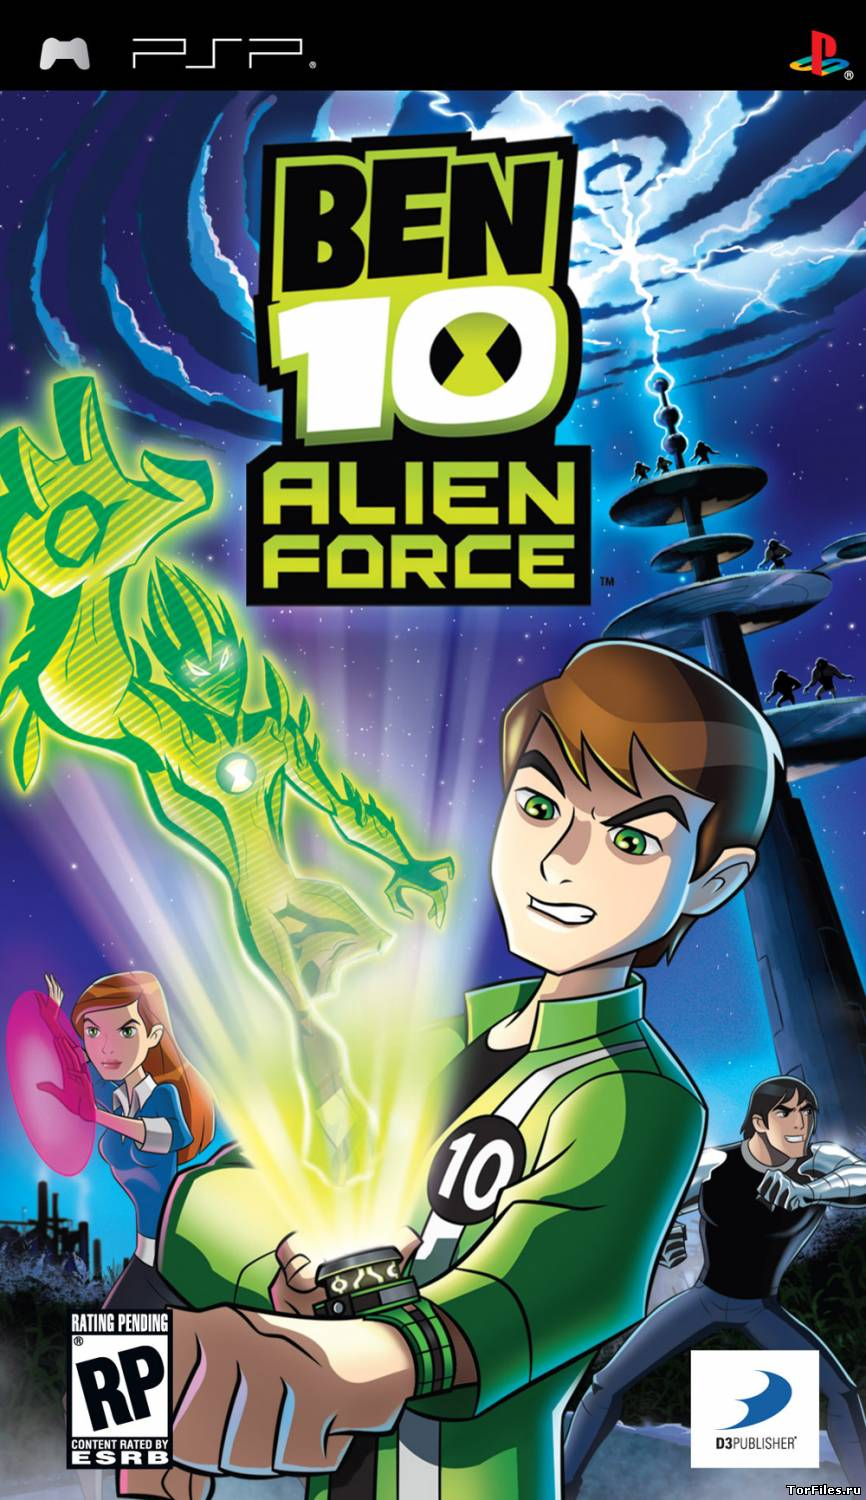 Ben 10 - Alien Force